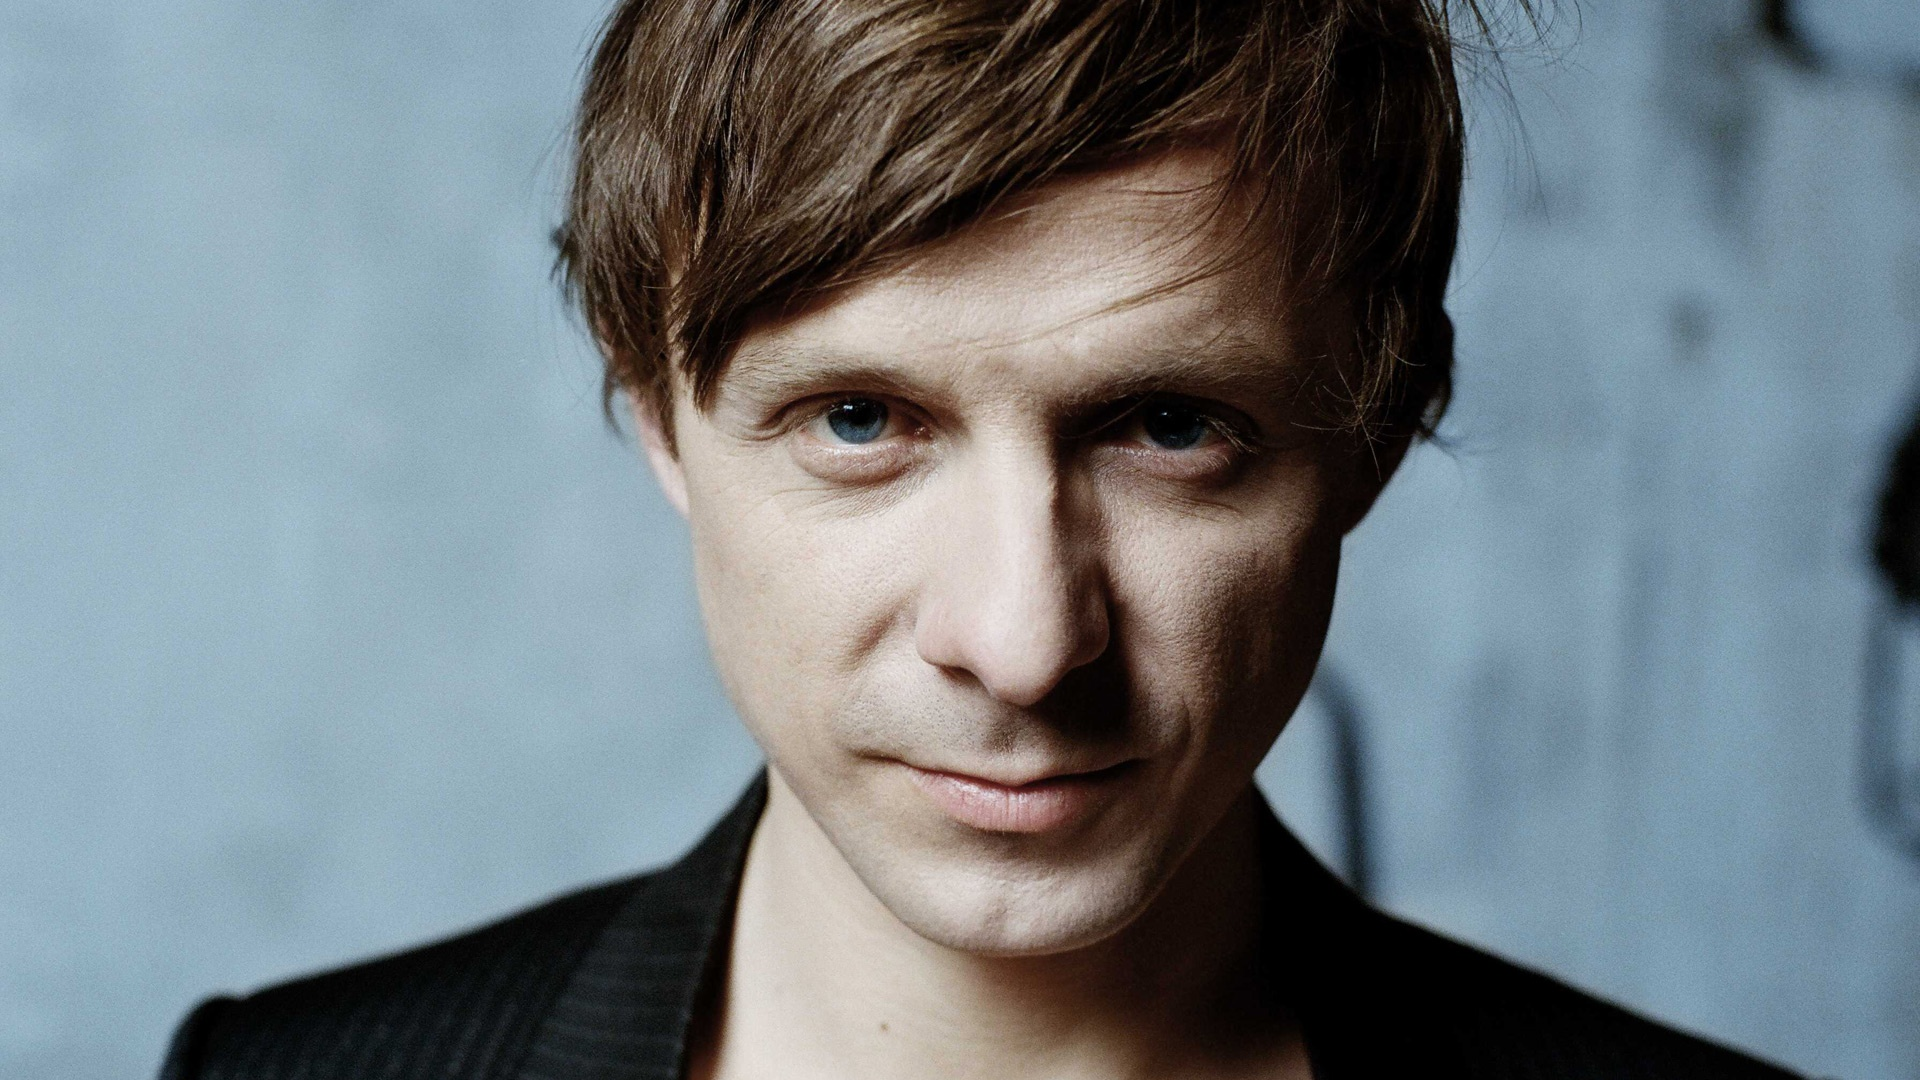 HQ Martin Solveig Wallpapers | File 643.42Kb